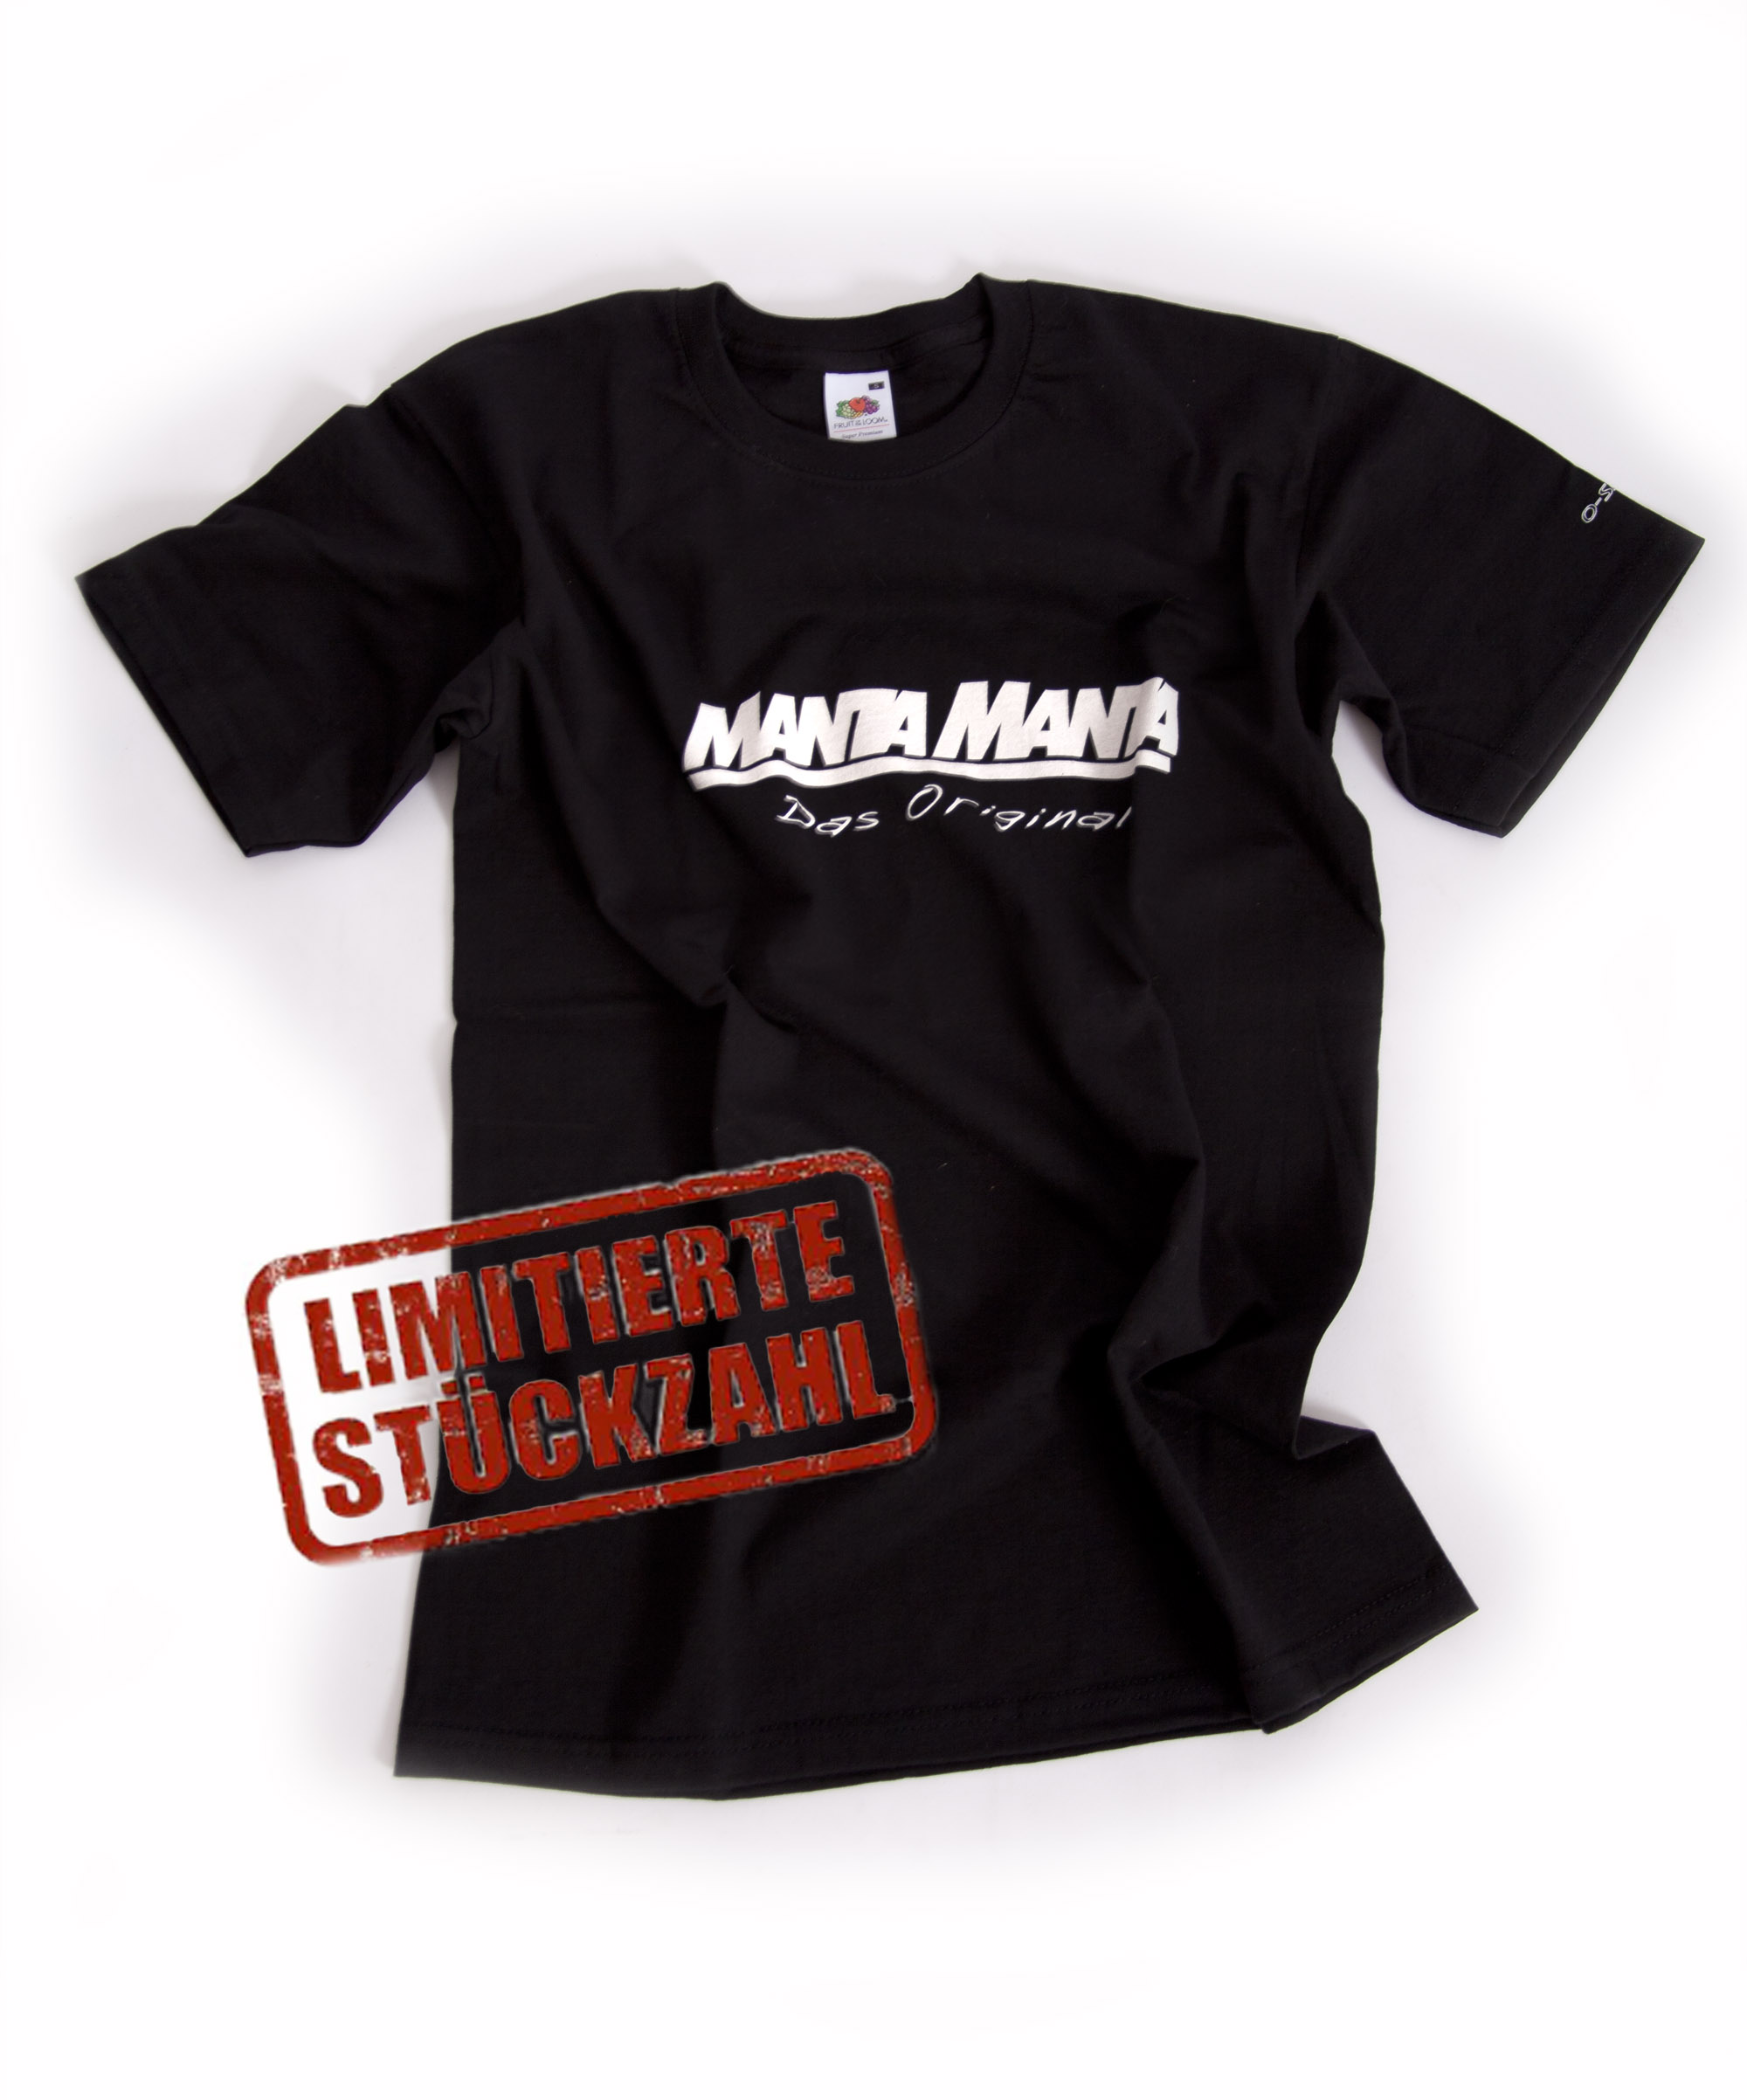 MantaManta-Das-Original- Nullserie-T-Shirt-MG 0683